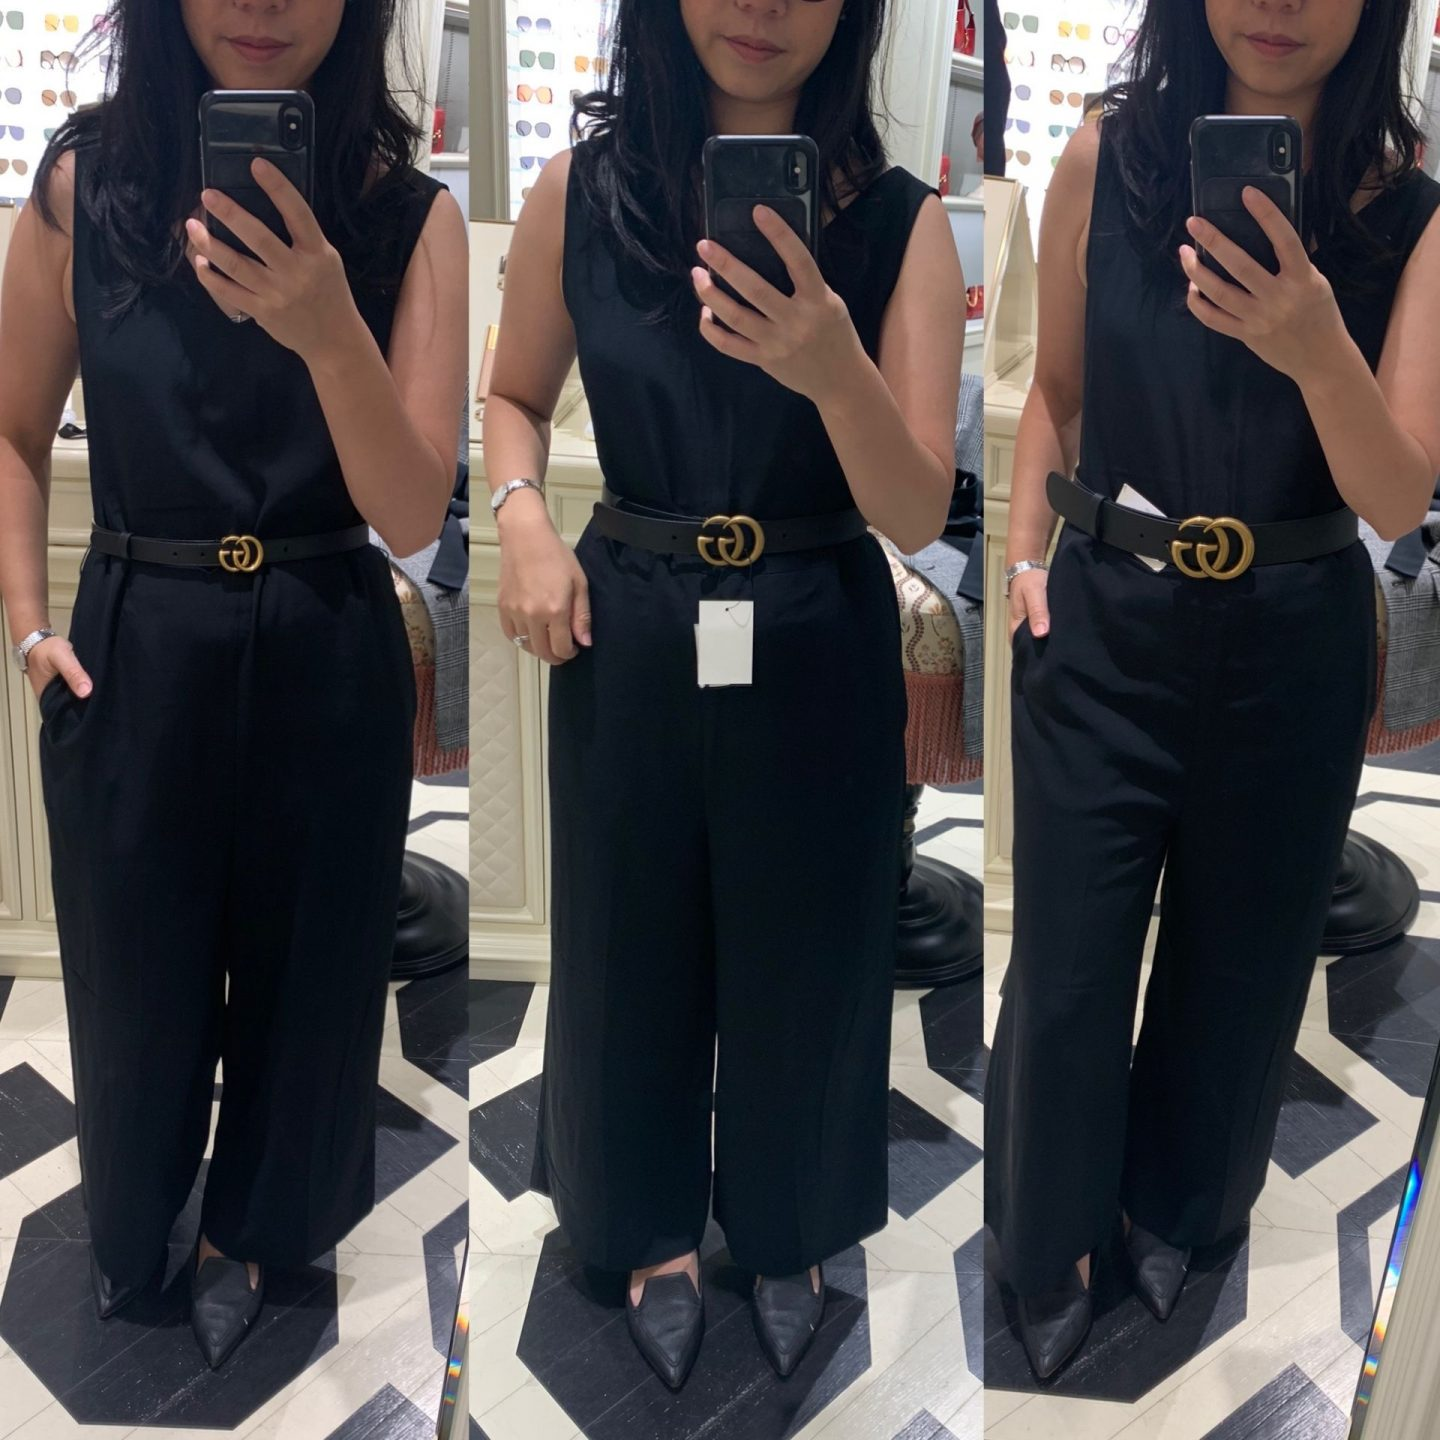 photo of woman wearing different width gucci belts in blog post featuring gucci belt comparison